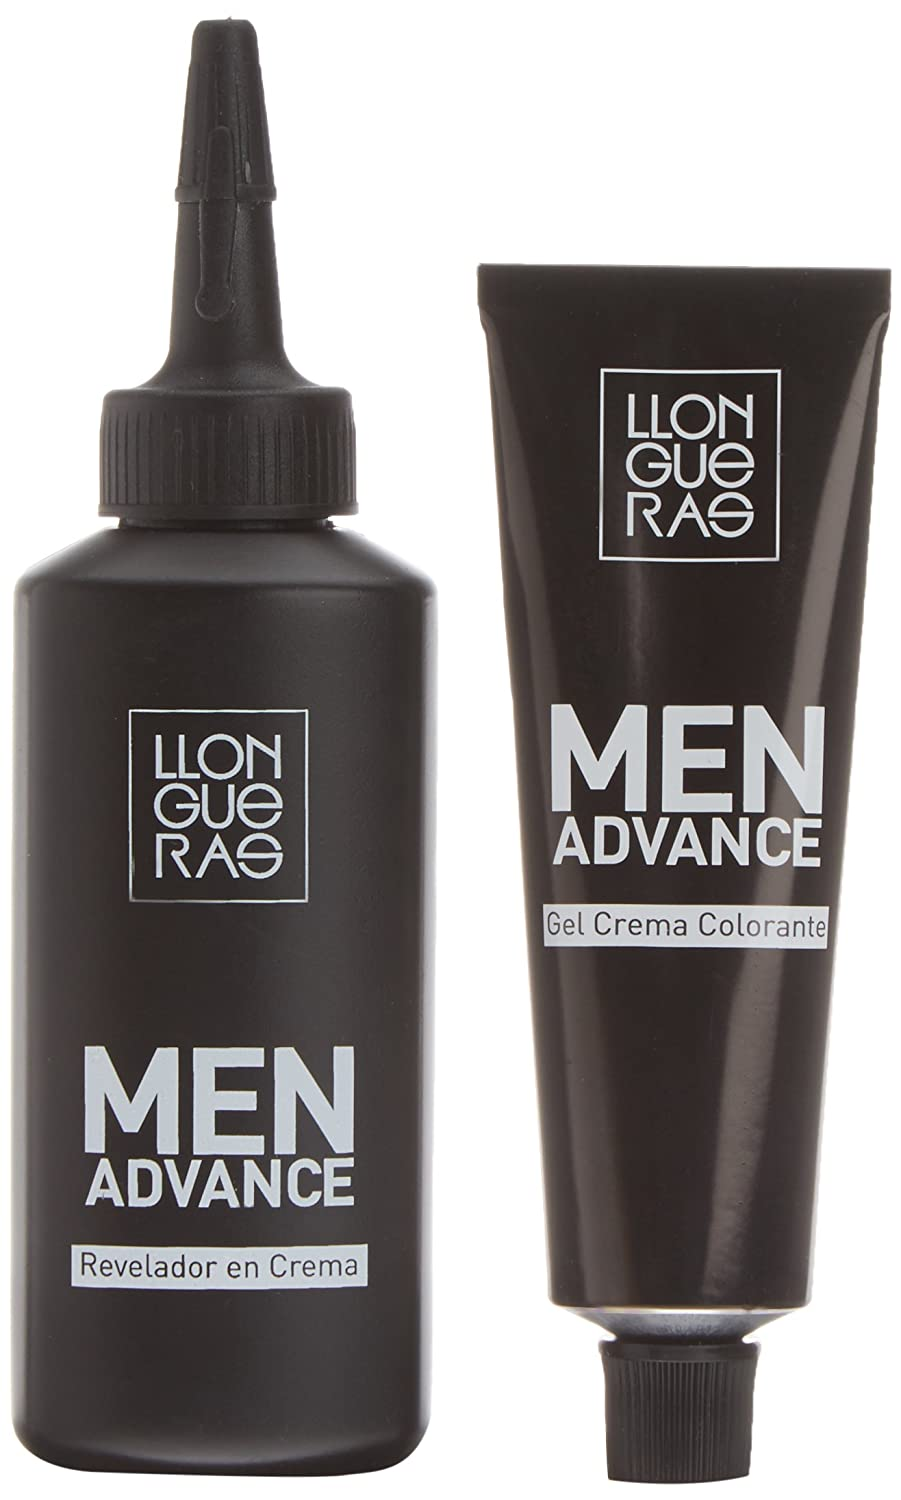 Amazon.com : LLONGUERAS Men Advance Number 2, Dark Brown by Dexeus : Beauty